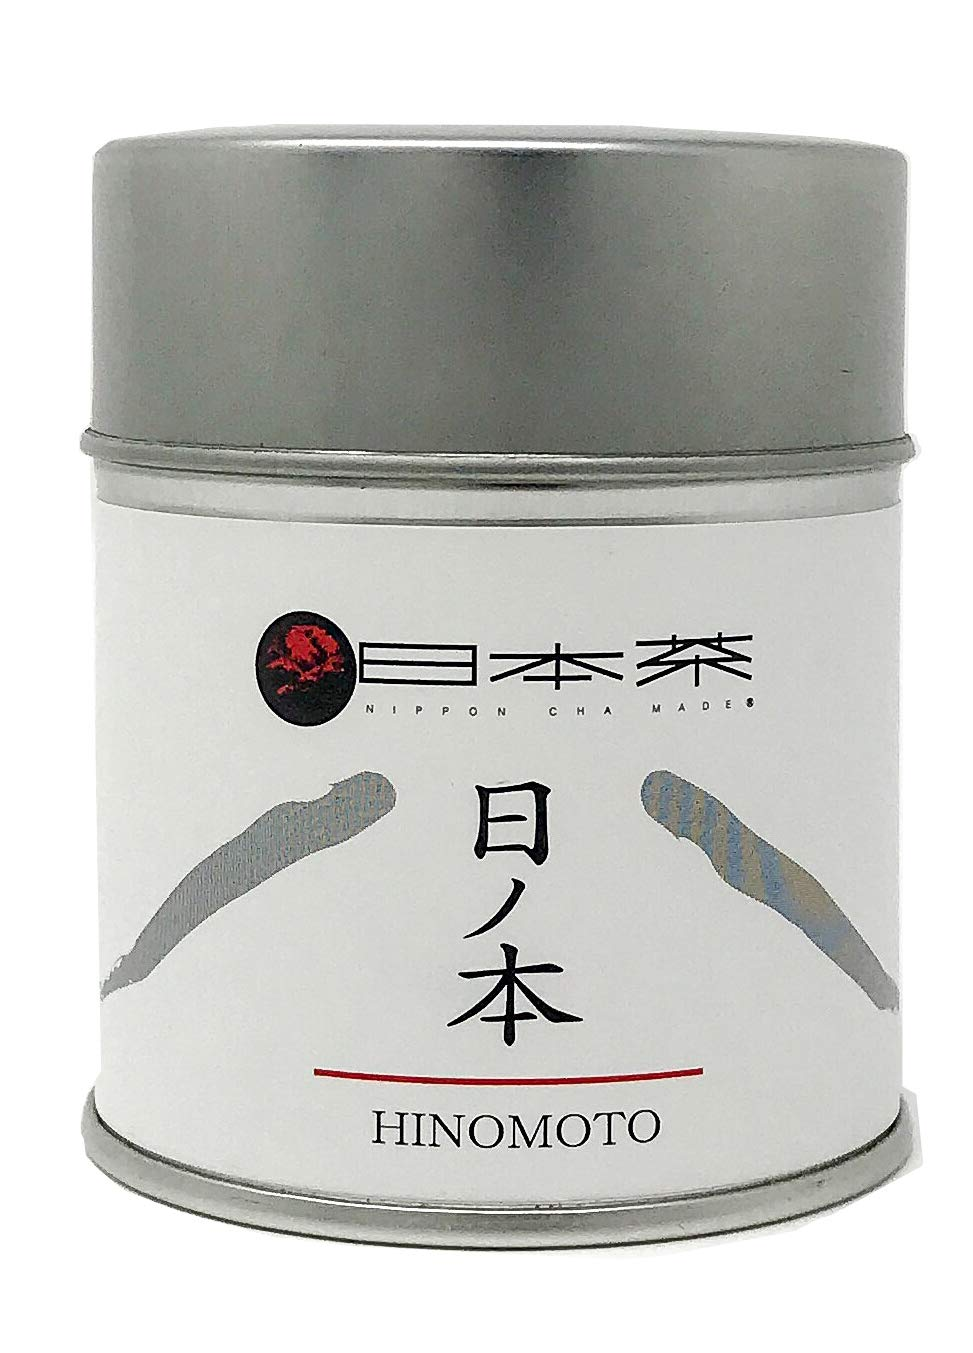 Nippon Cha Hinomoto Organic Matcha - JAS Certified - Japanese Origin - Ceremonial Grade Matcha For Everyday Recipes, 30g by NIPPON CHA MADE